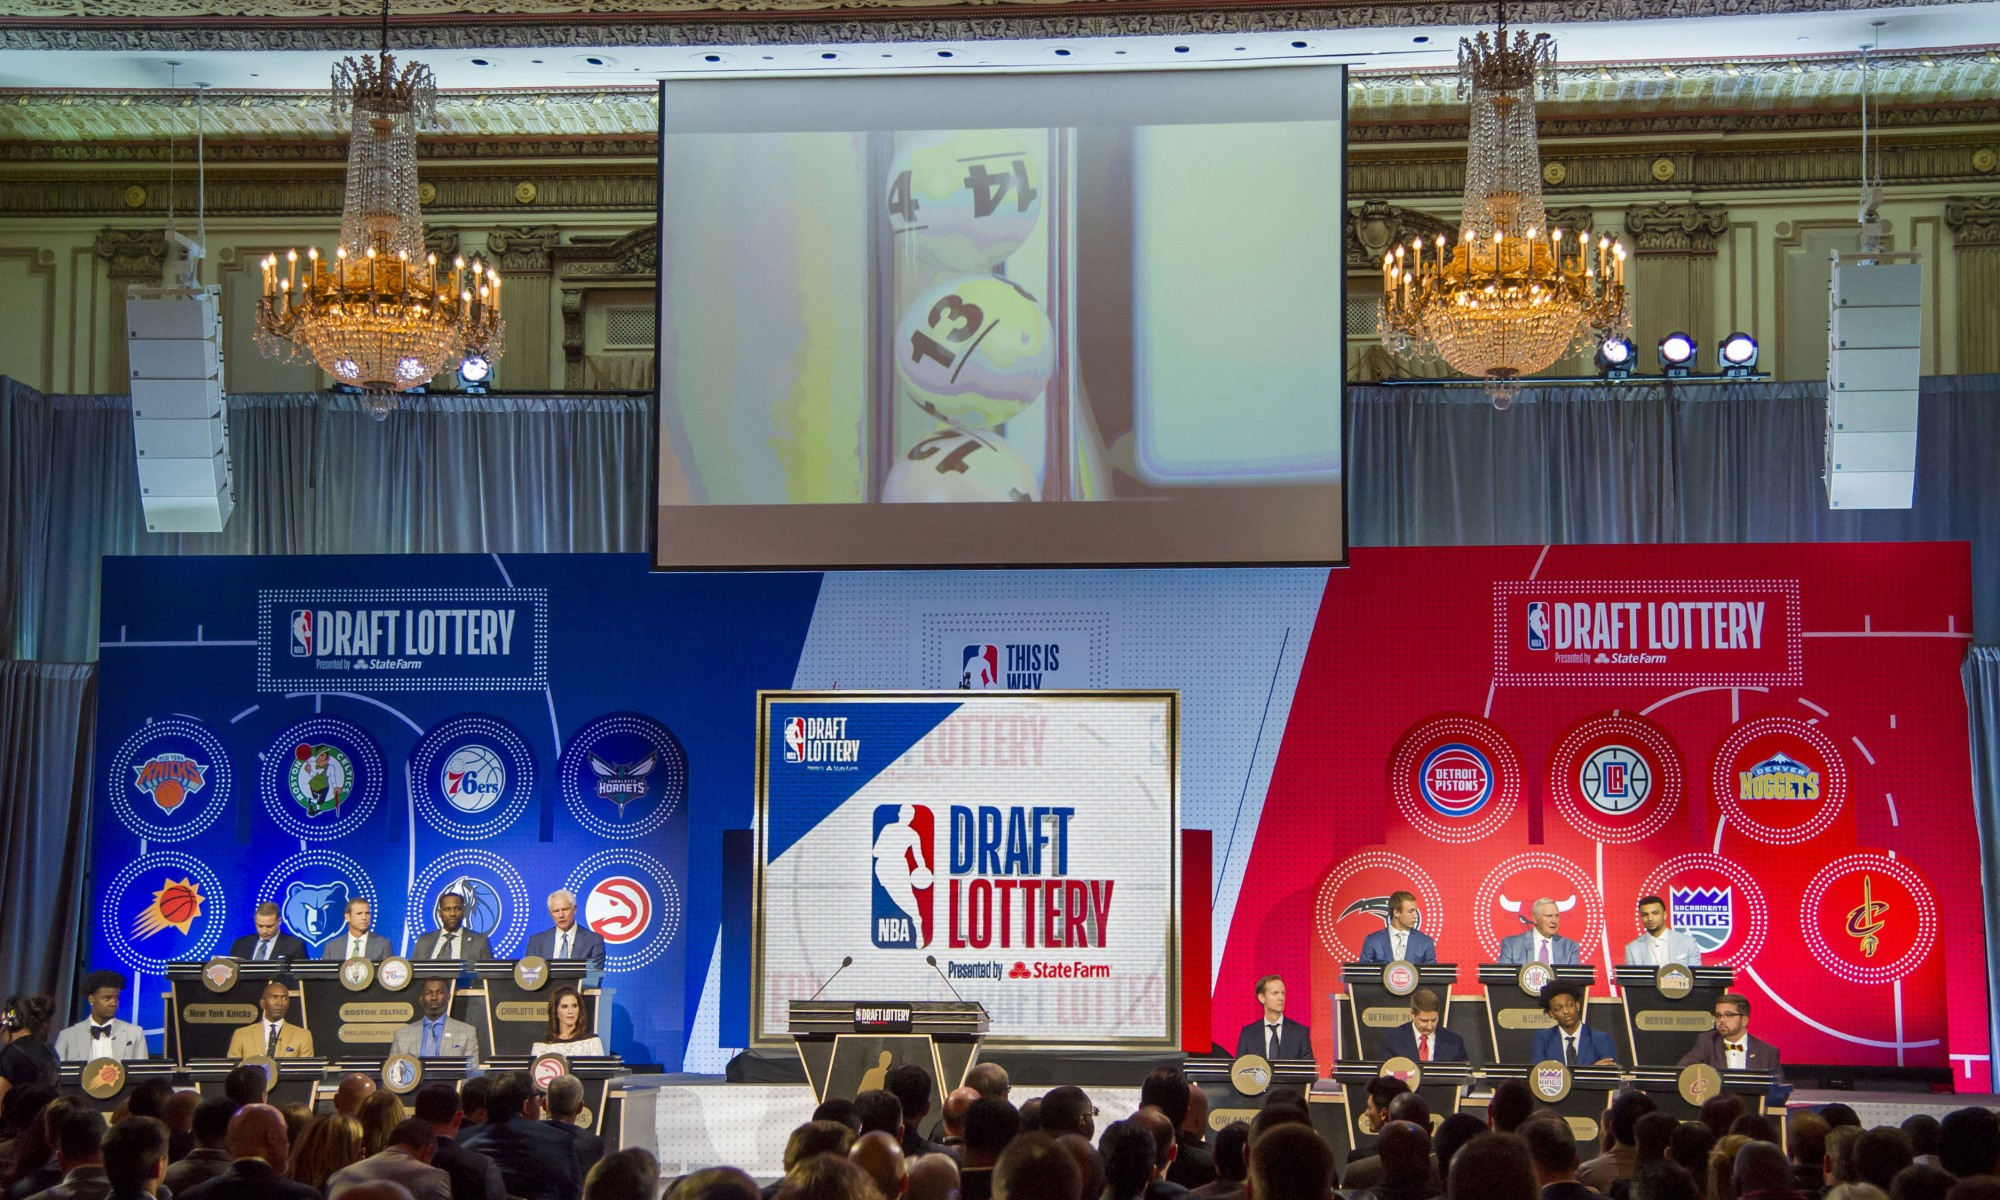 nba draft lottery drawing exactly as it happened